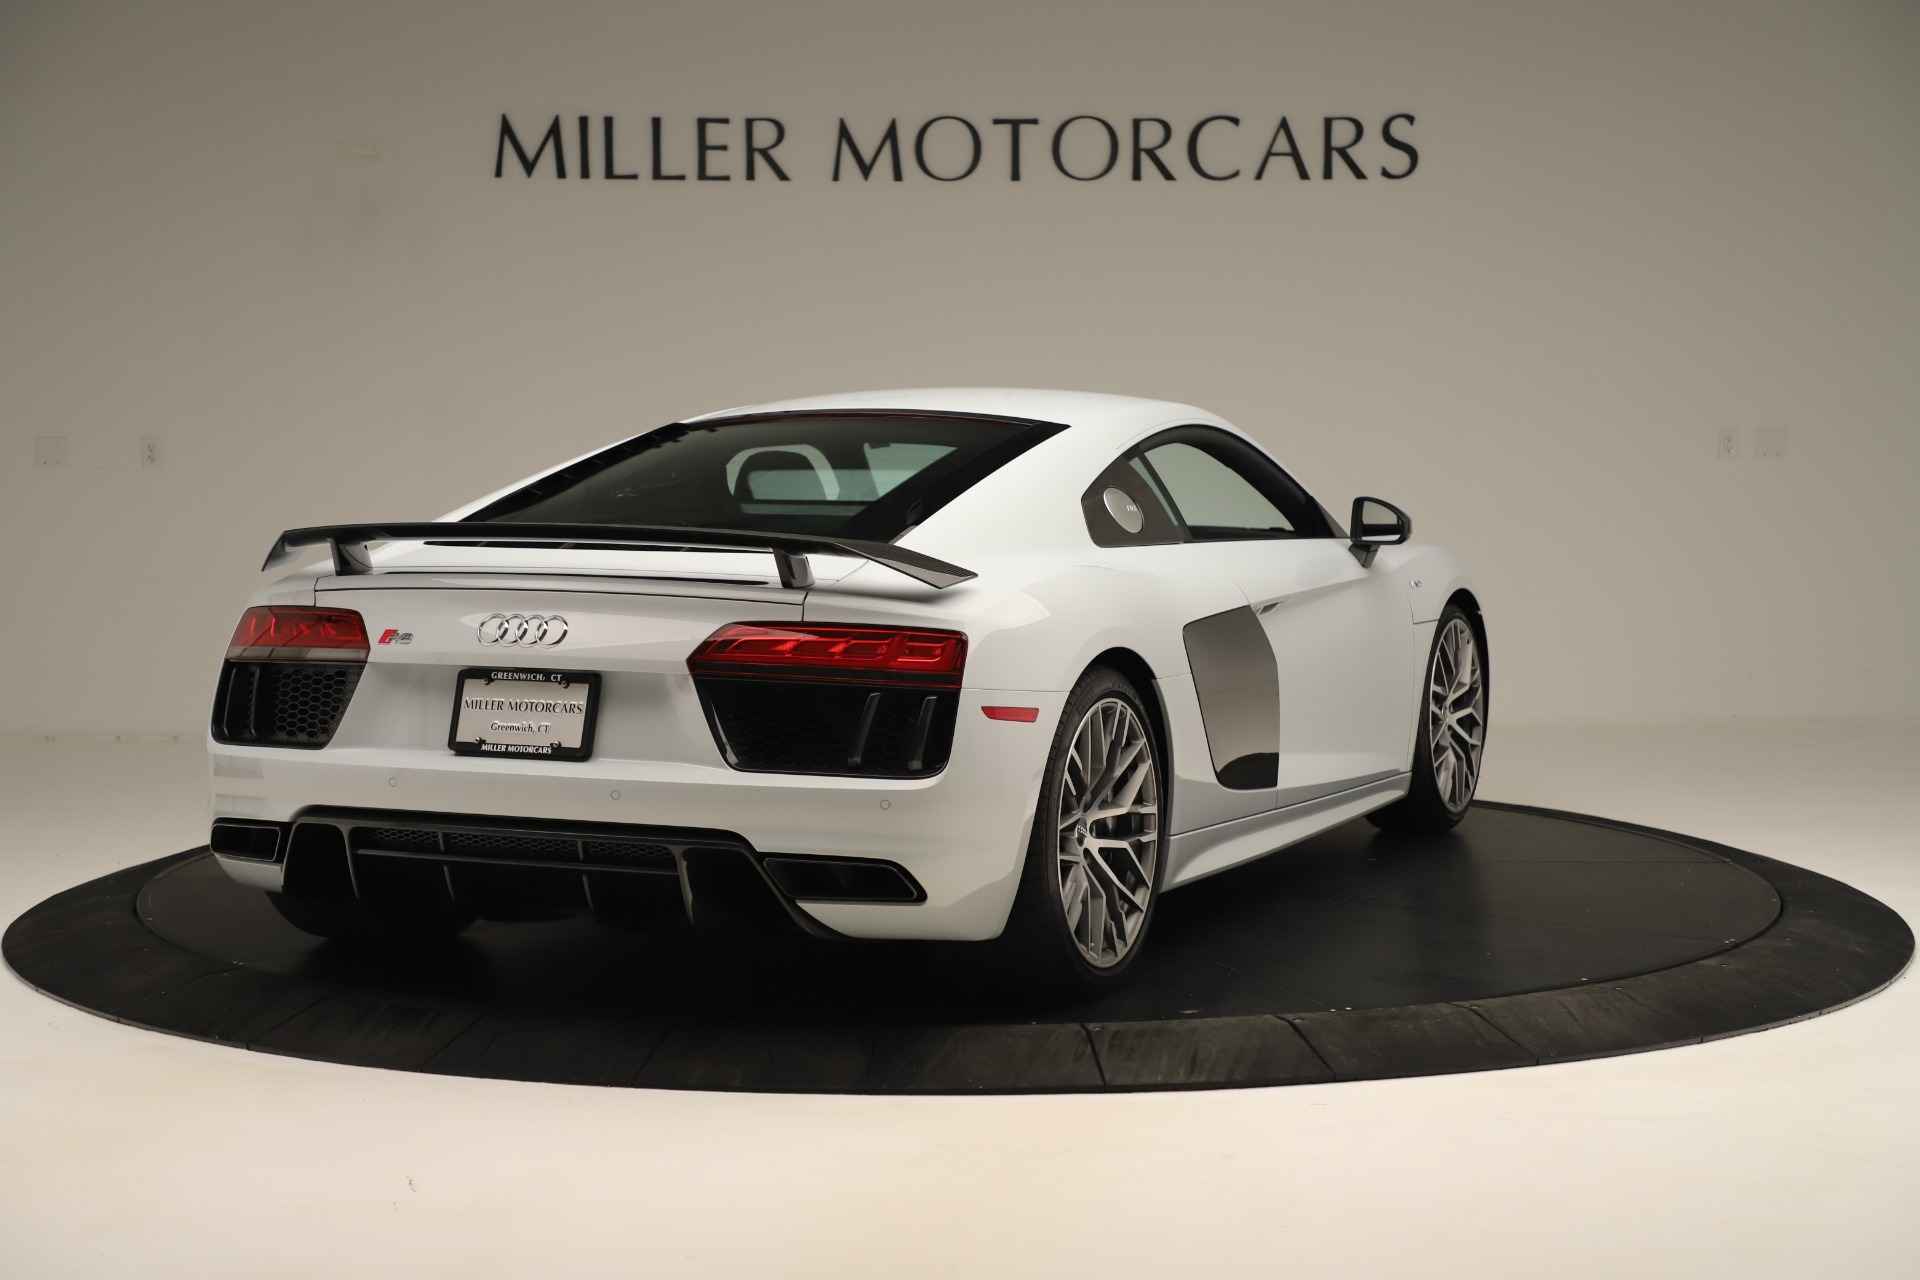 Used 2018 Audi R8 5.2 quattro V10 Plus For Sale In Westport, CT 3360_p7